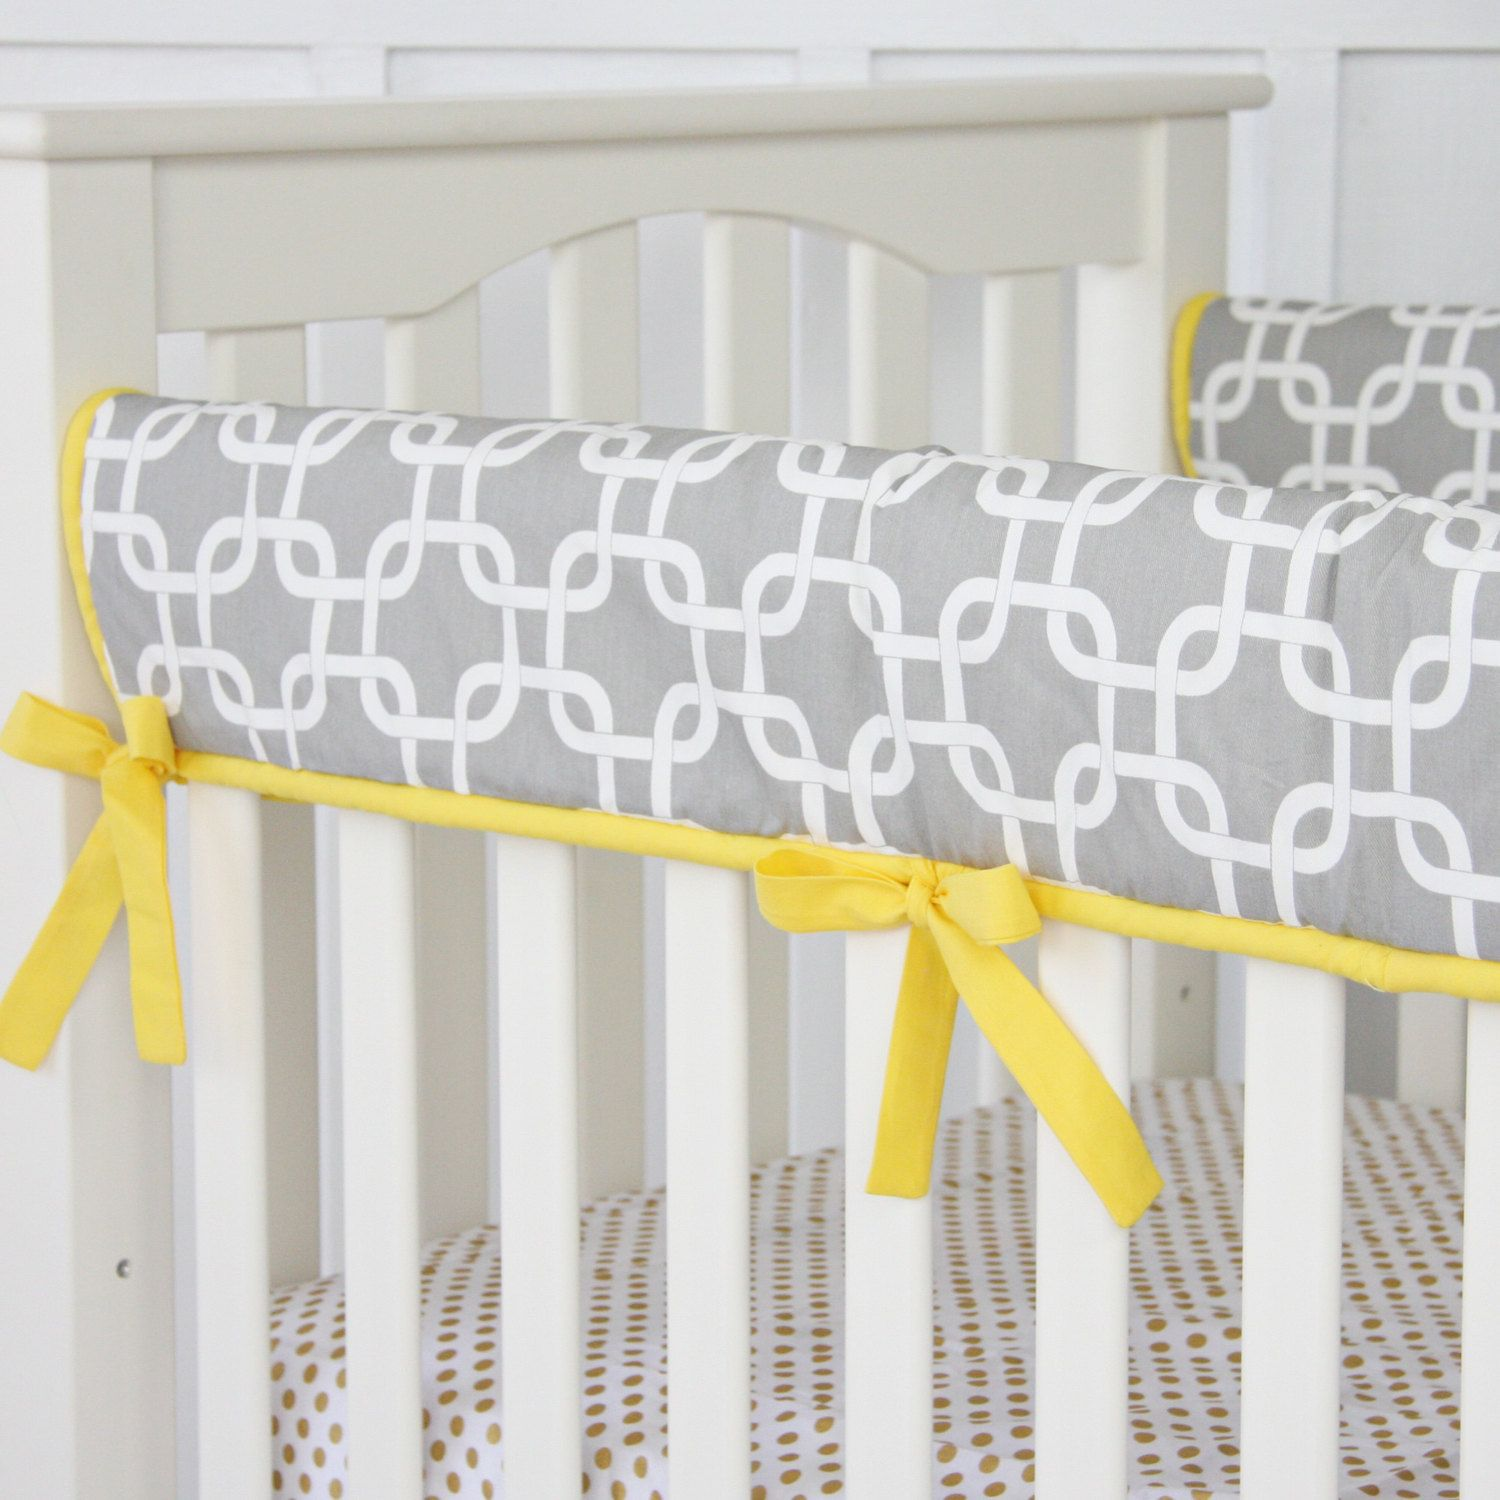 Crib rail for sale - Bright Baby Gray And Yellow Crib Rail By Cadenlanebabybedding 68 00